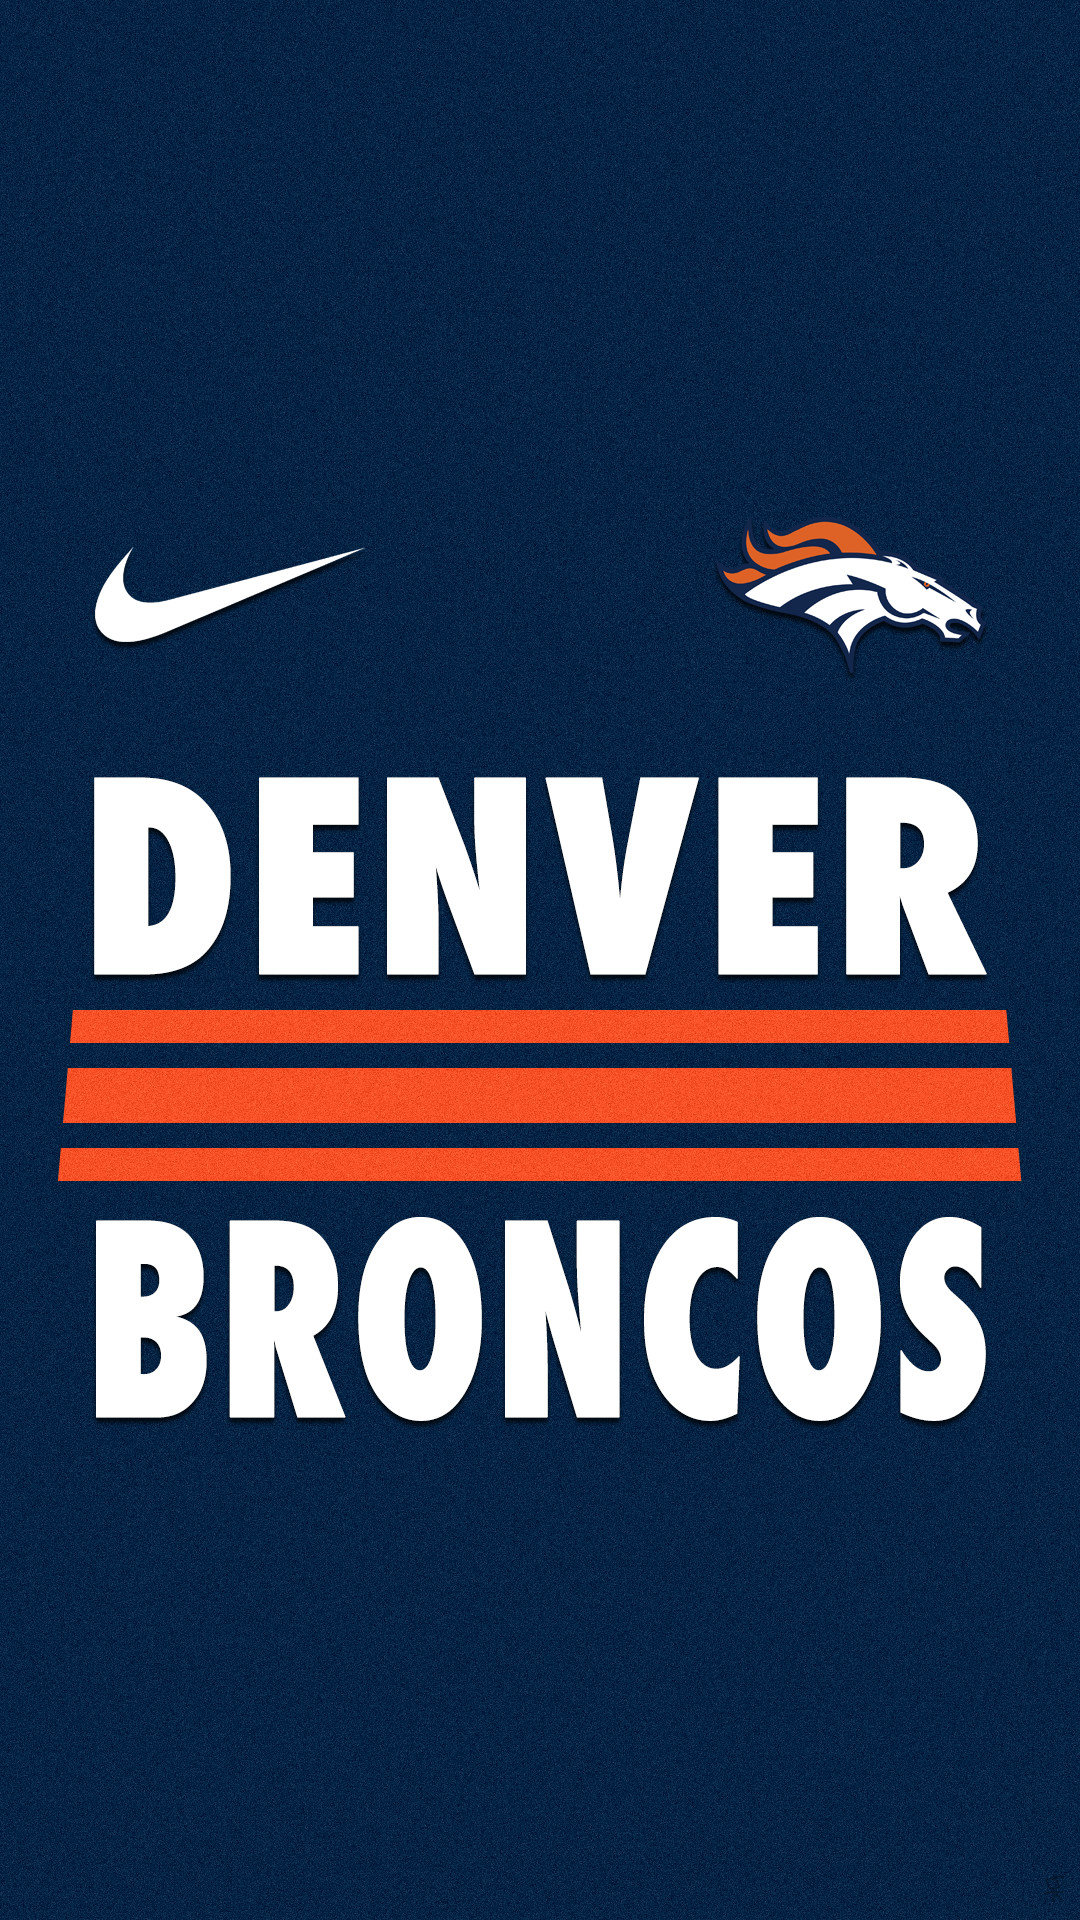 1920x1200 Related Wallpapers from Broncos Wallpaper. Cincinnati Reds Iphone Wallpaper High Definition